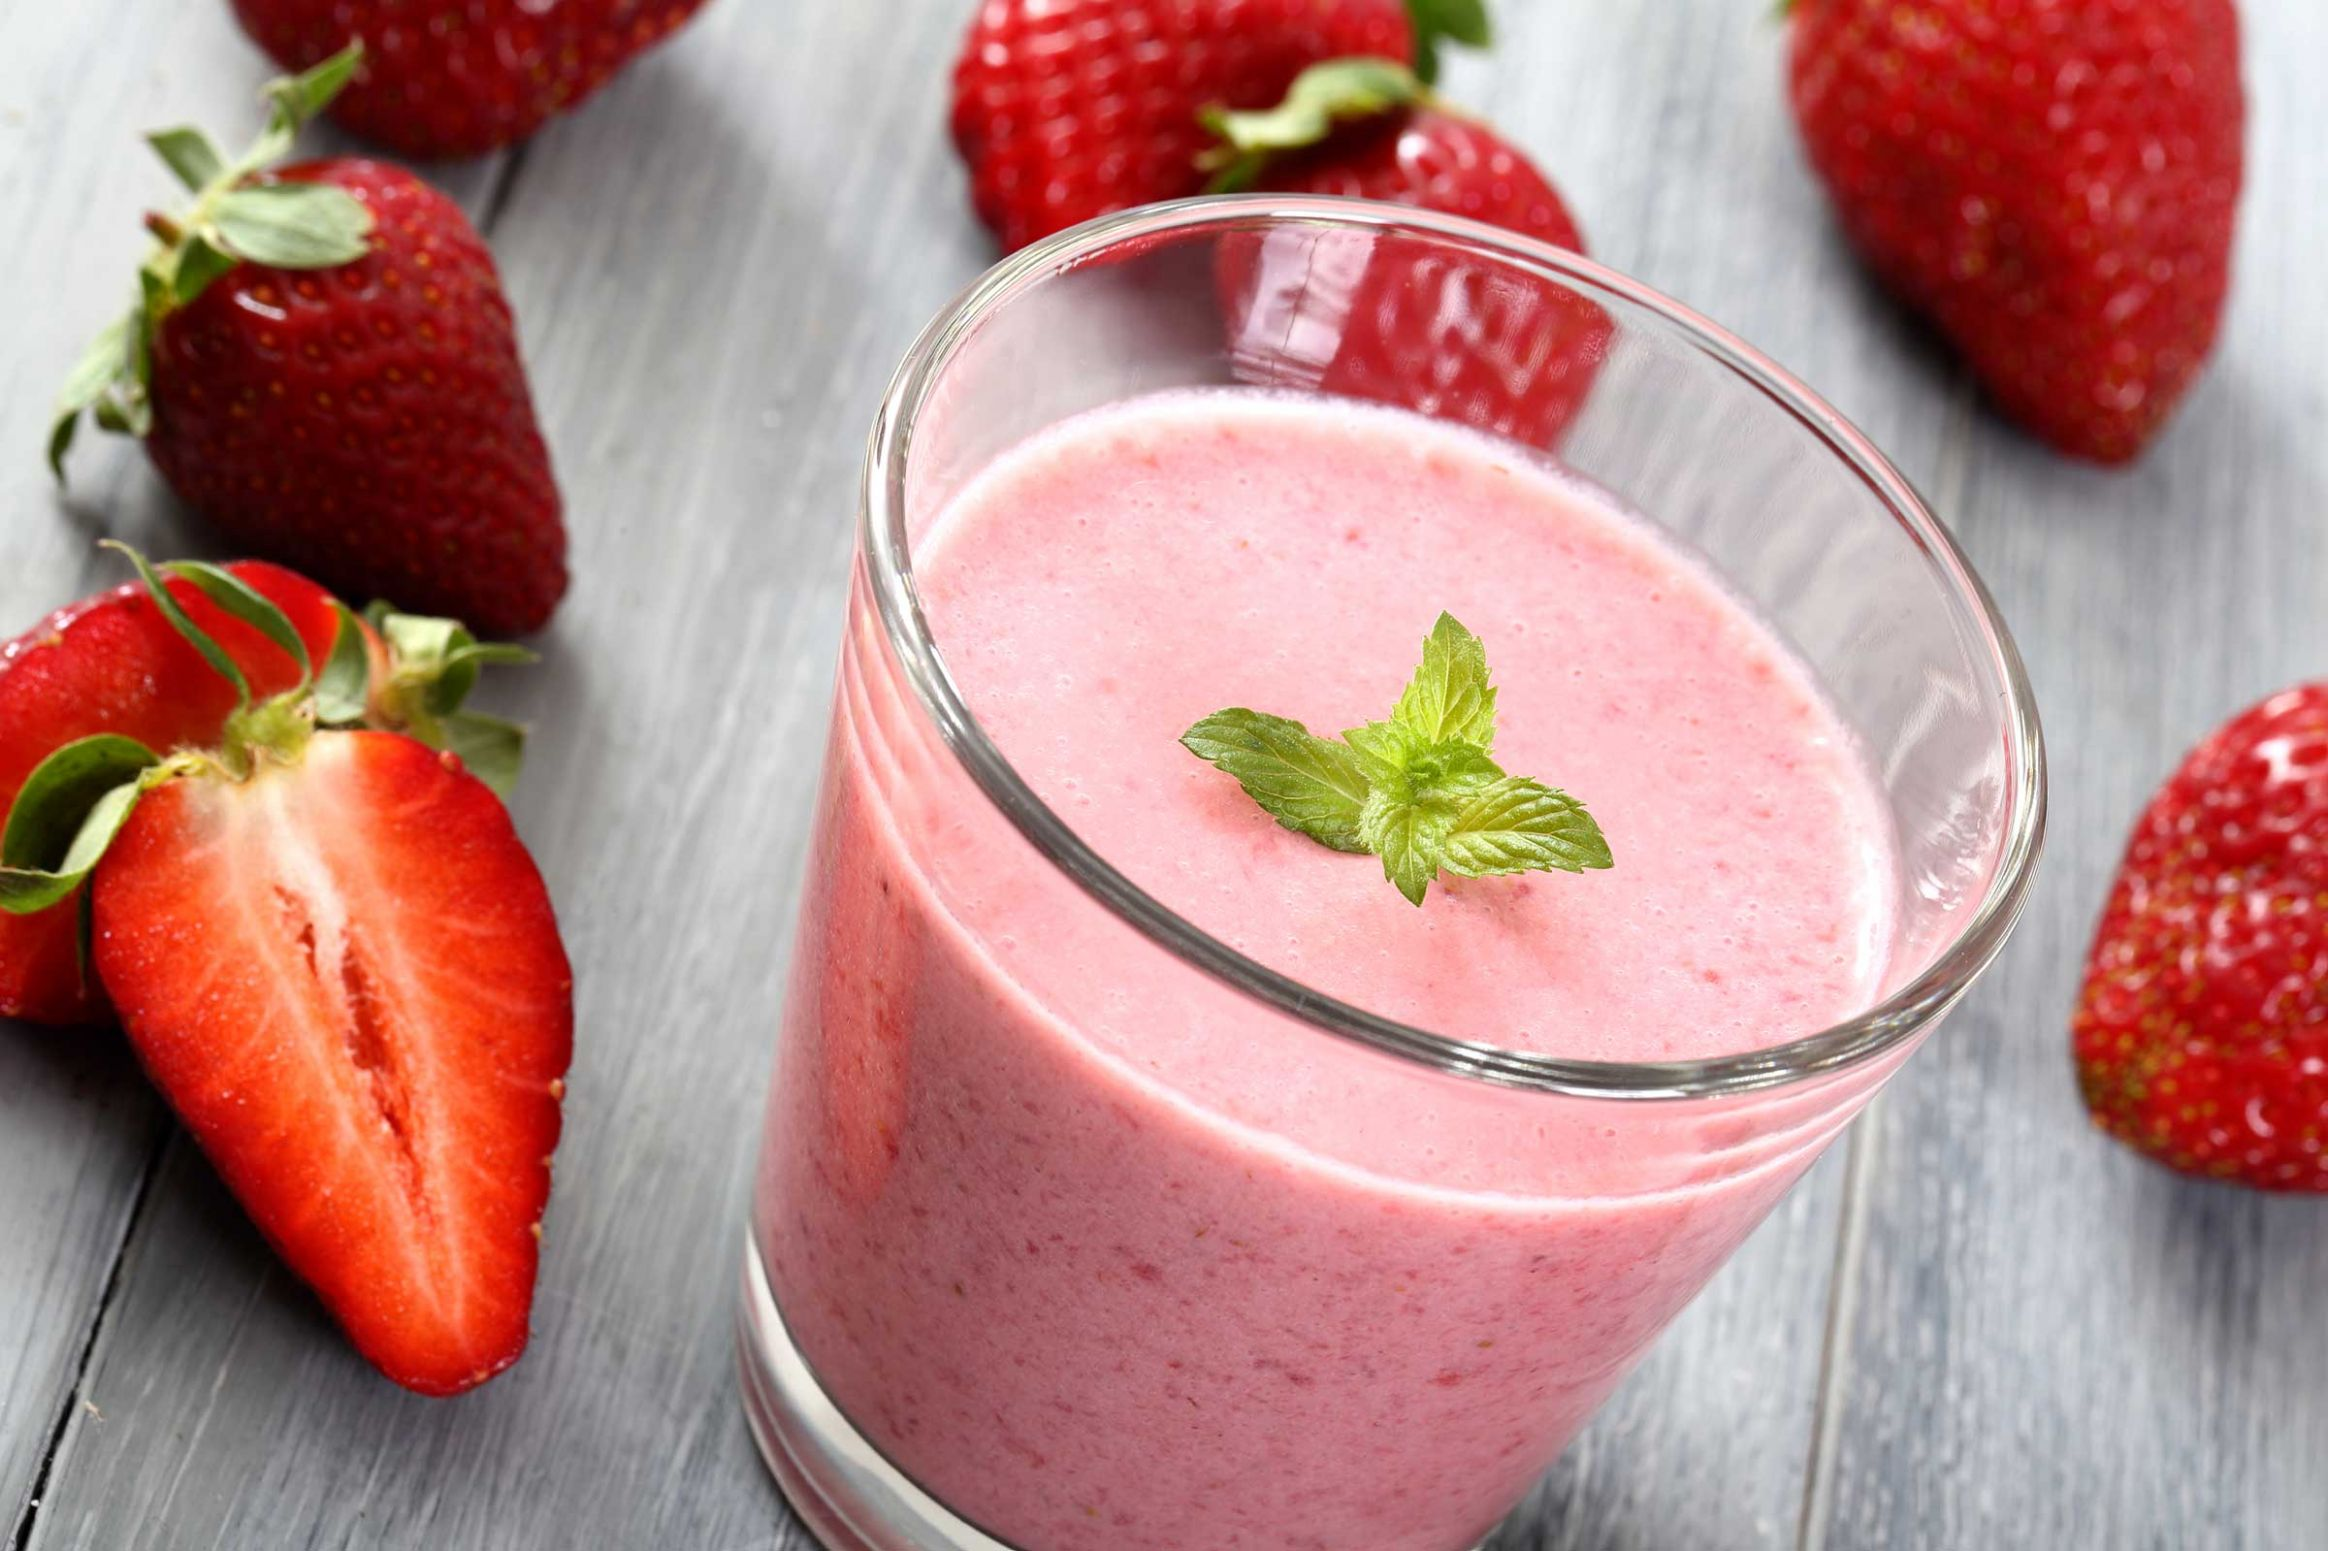 Healthy Strawberry Smoothie - Healthy Smoothie Recipes For Weight Loss Nz